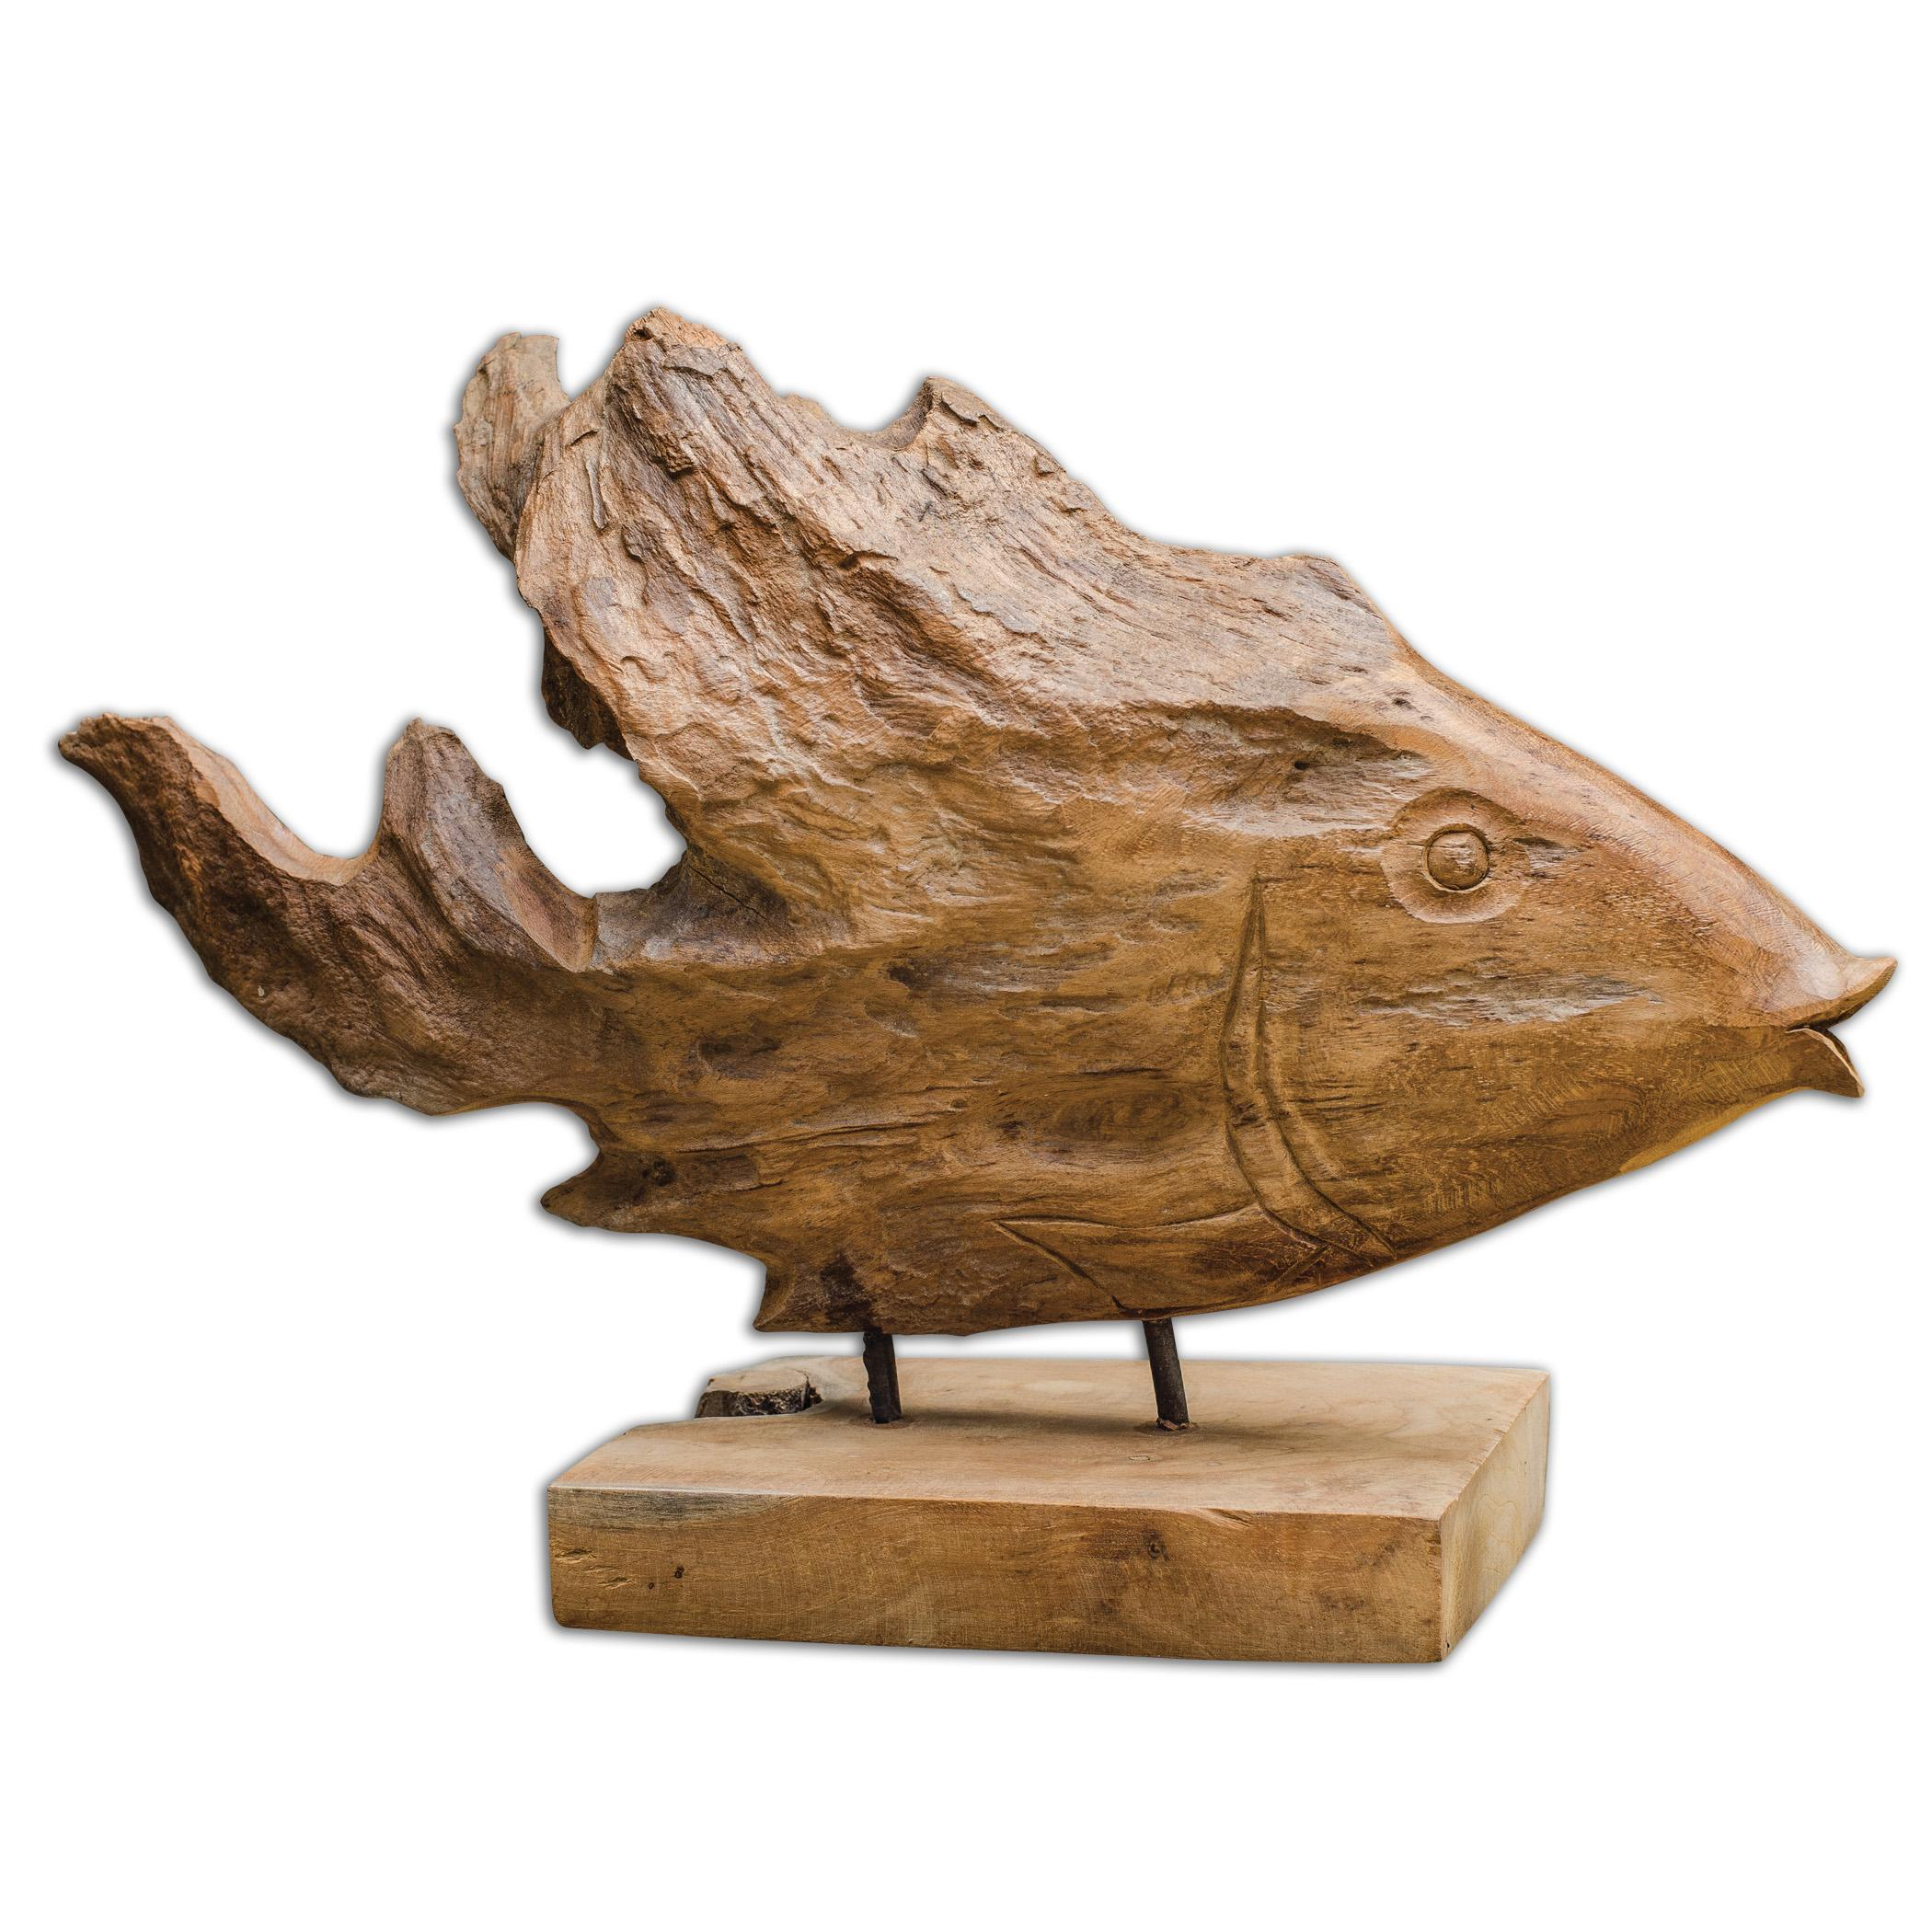 Uttermost Accessories Teak Fish Sculpture - Item Number: 17084